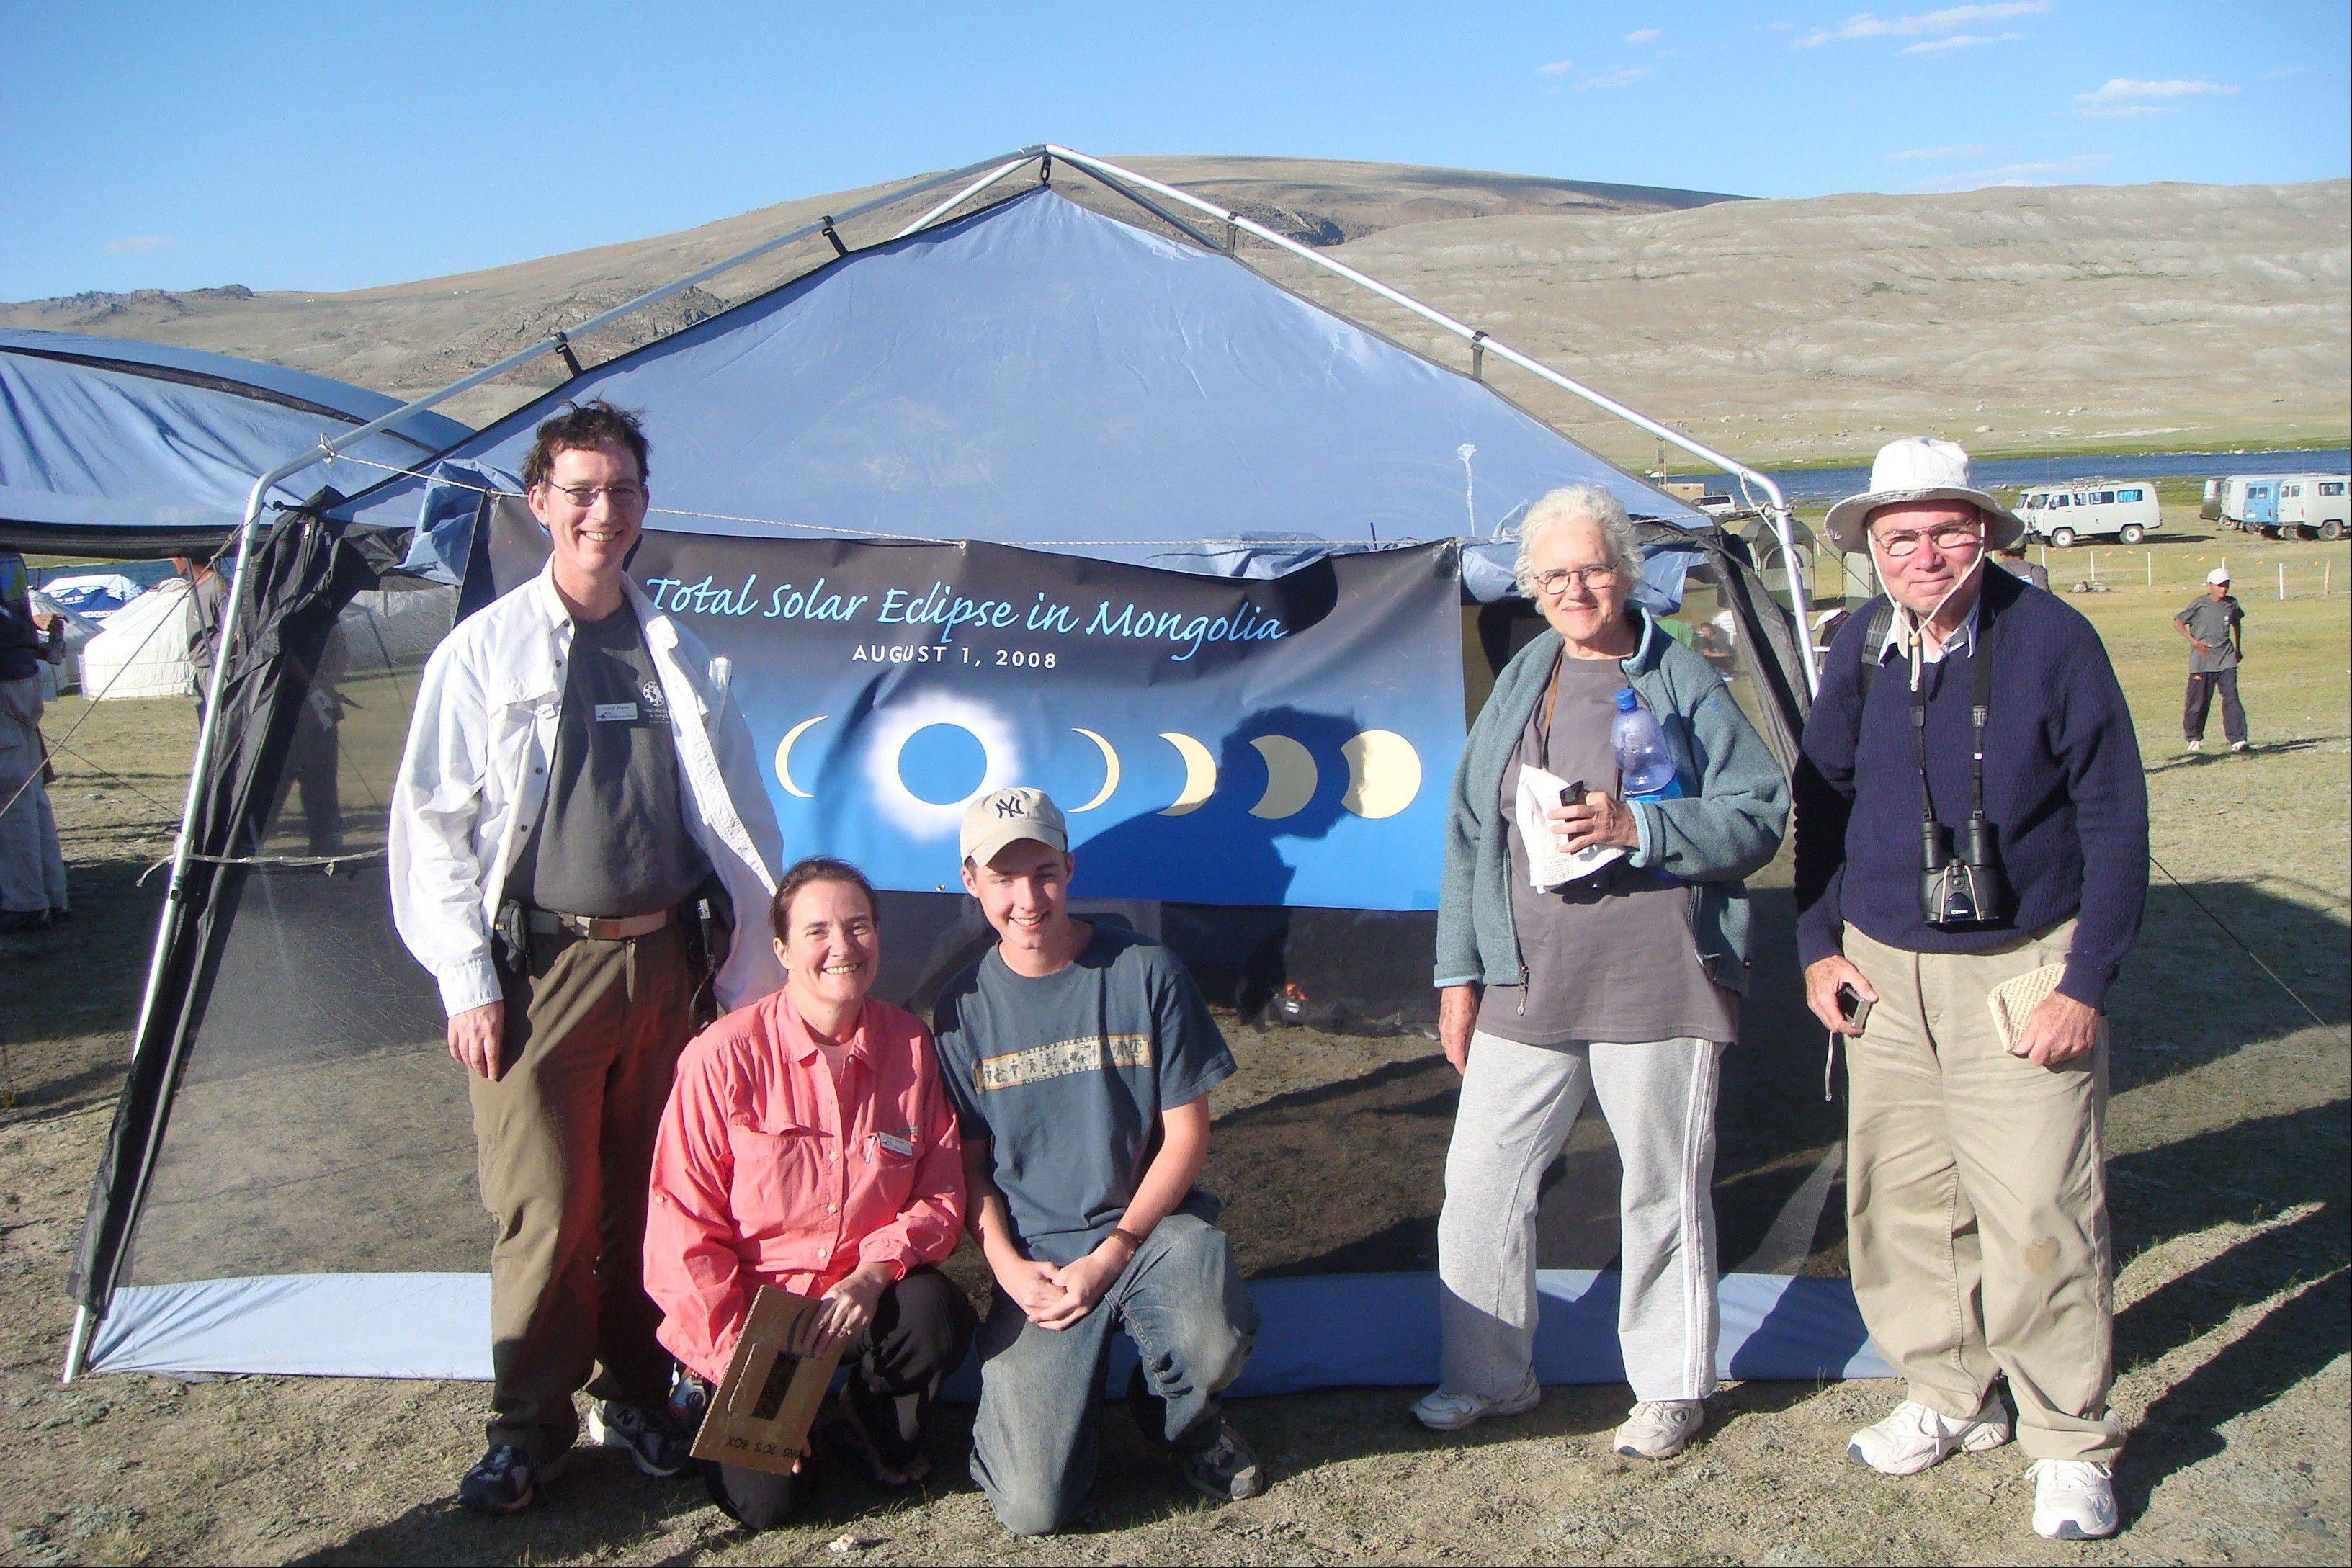 George Bugbee, left, Diane Bugbee and Dali and Eli Maor, in Mongolia where they had traveled to watch a solar eclipse. The Bugbees are traveling to watch their fourth solar eclipse on Nov. 14 in Cairns, Australia.